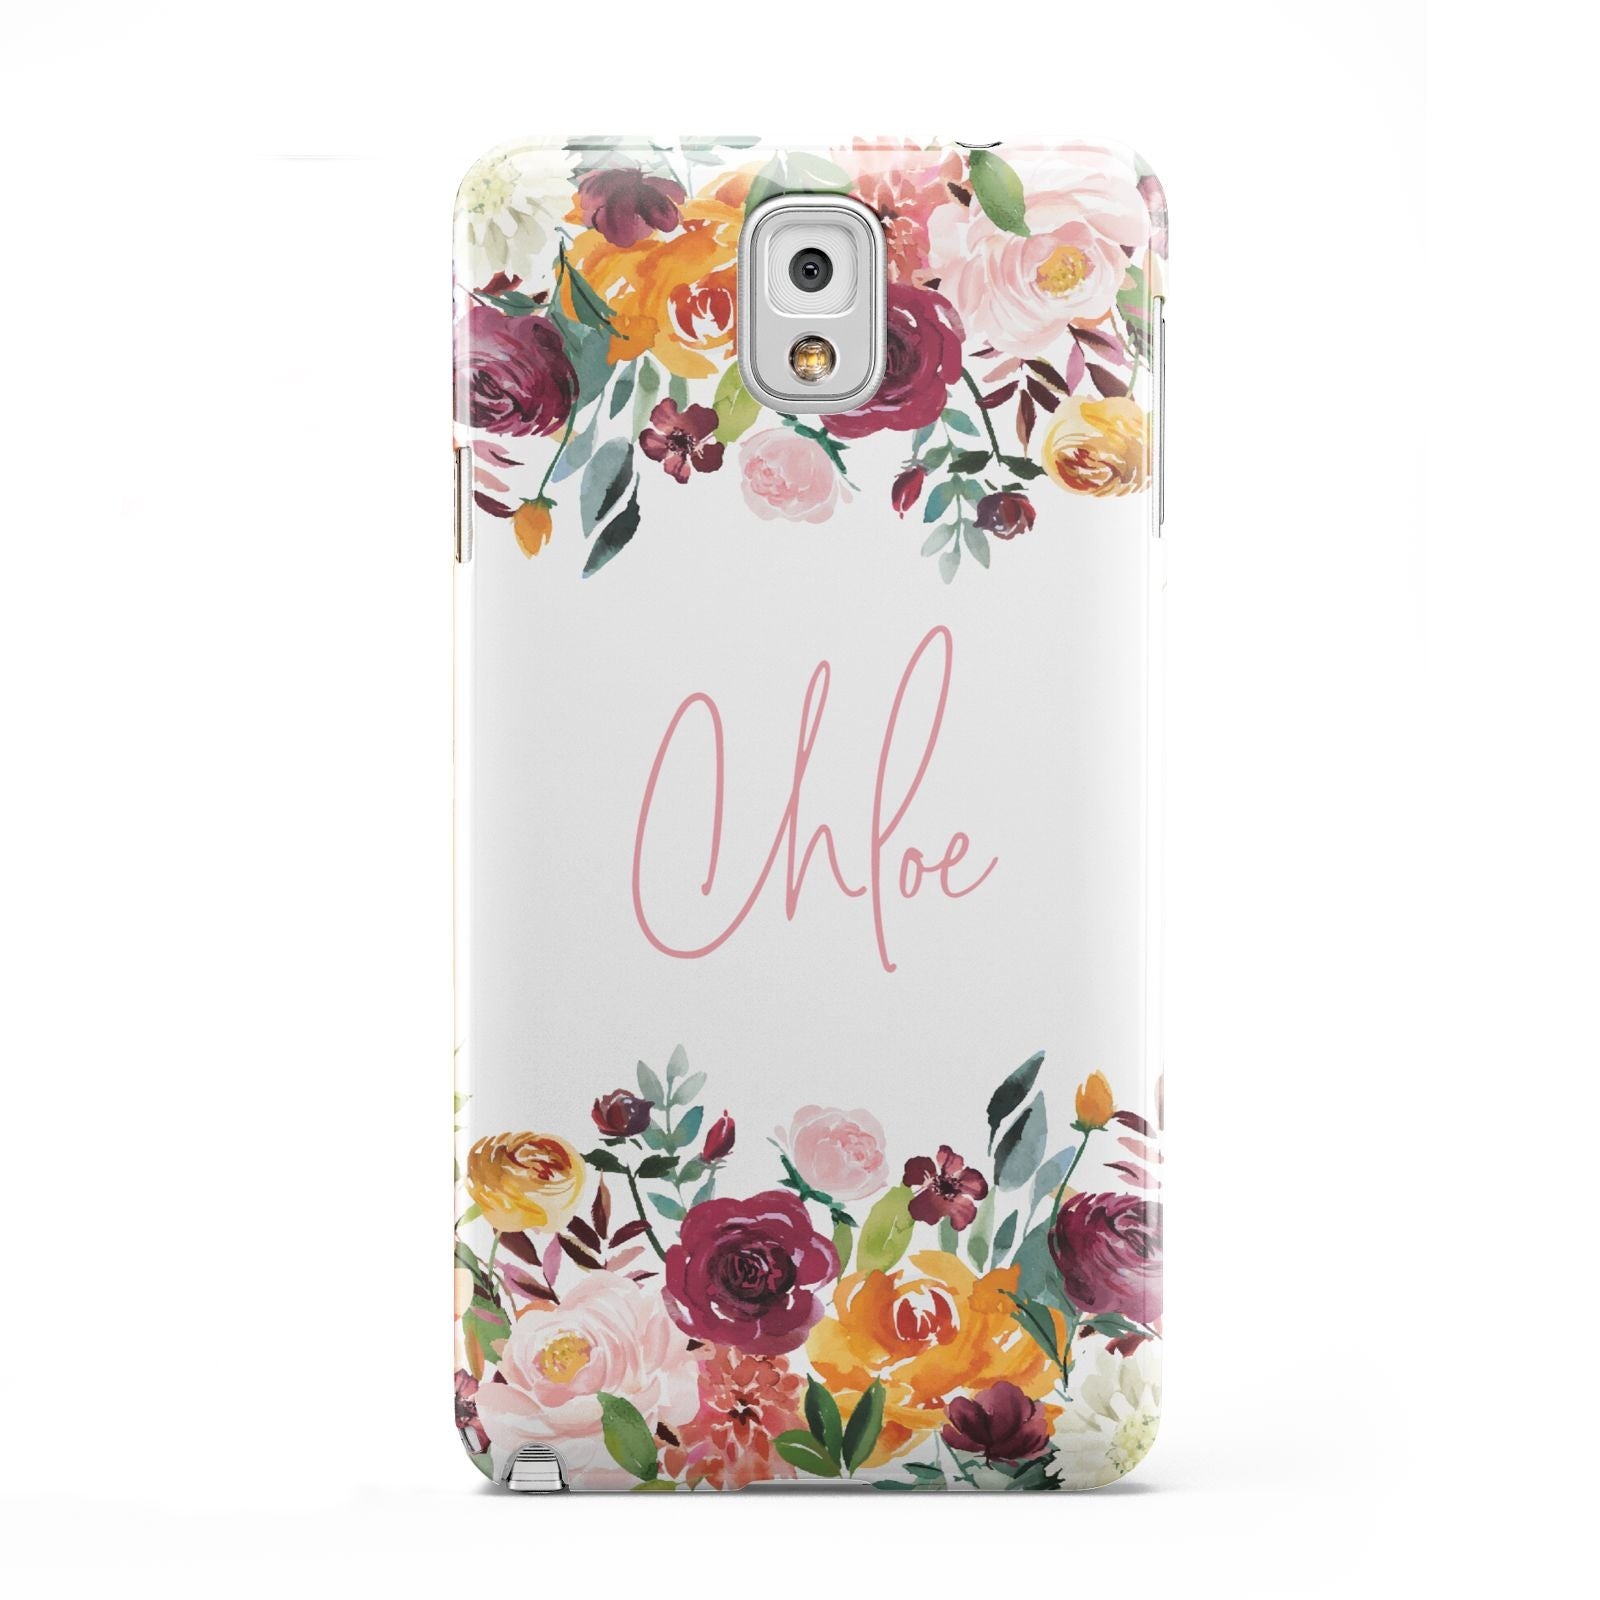 Personalised Name Transparent Flowers Samsung Galaxy Note 3 Case